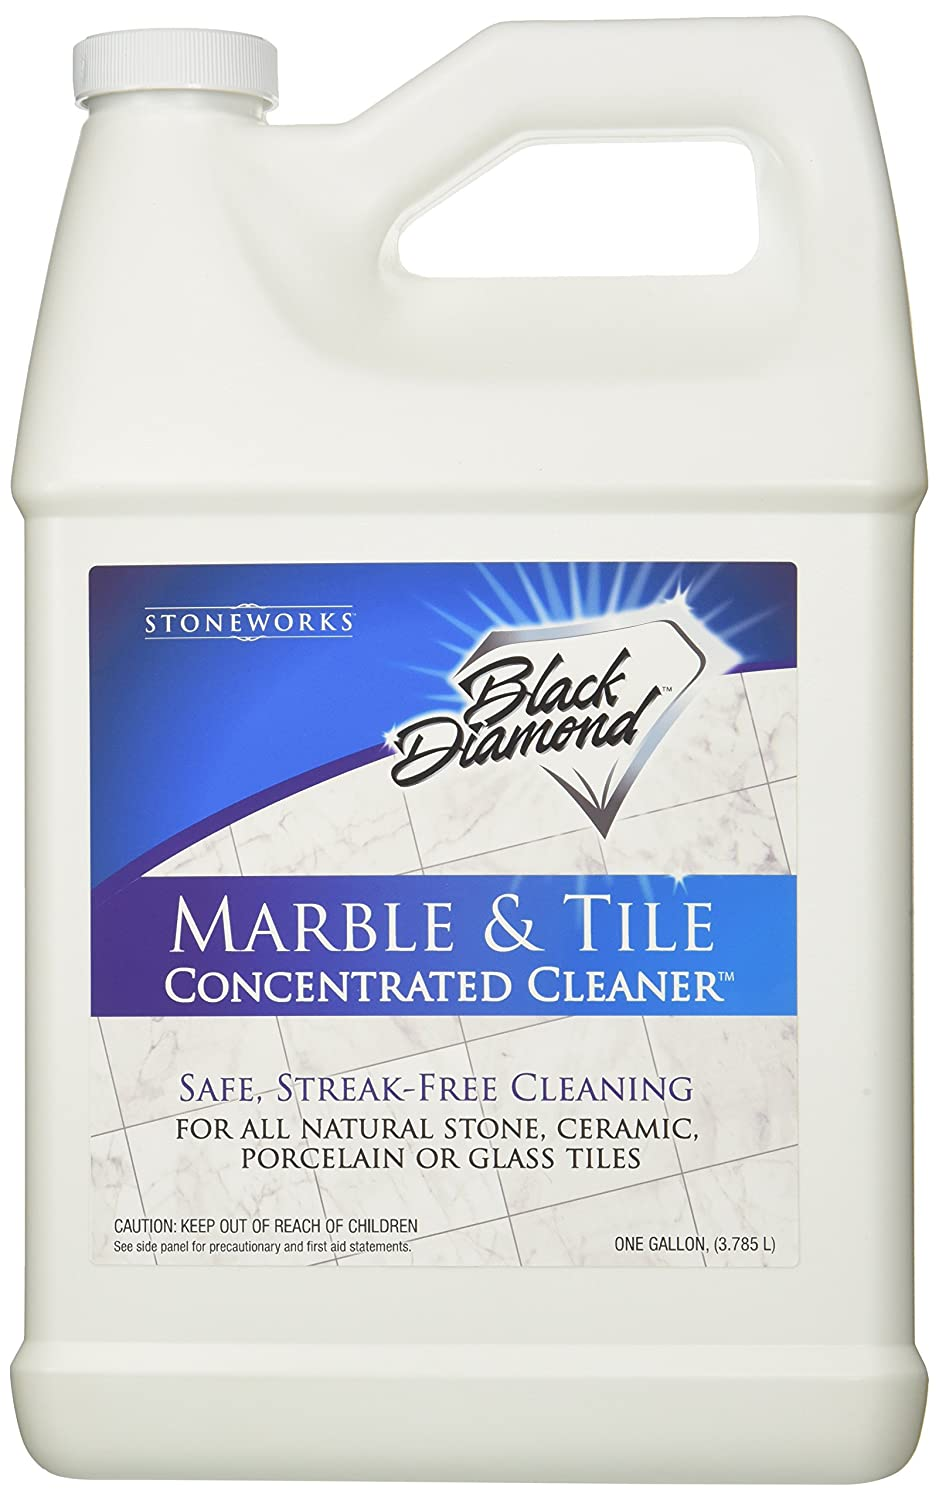 Amazon black diamond marble tile floor cleaner great for amazon black diamond marble tile floor cleaner great for ceramic porcelain granite natural stone vinyl linoleum doublecrazyfo Gallery